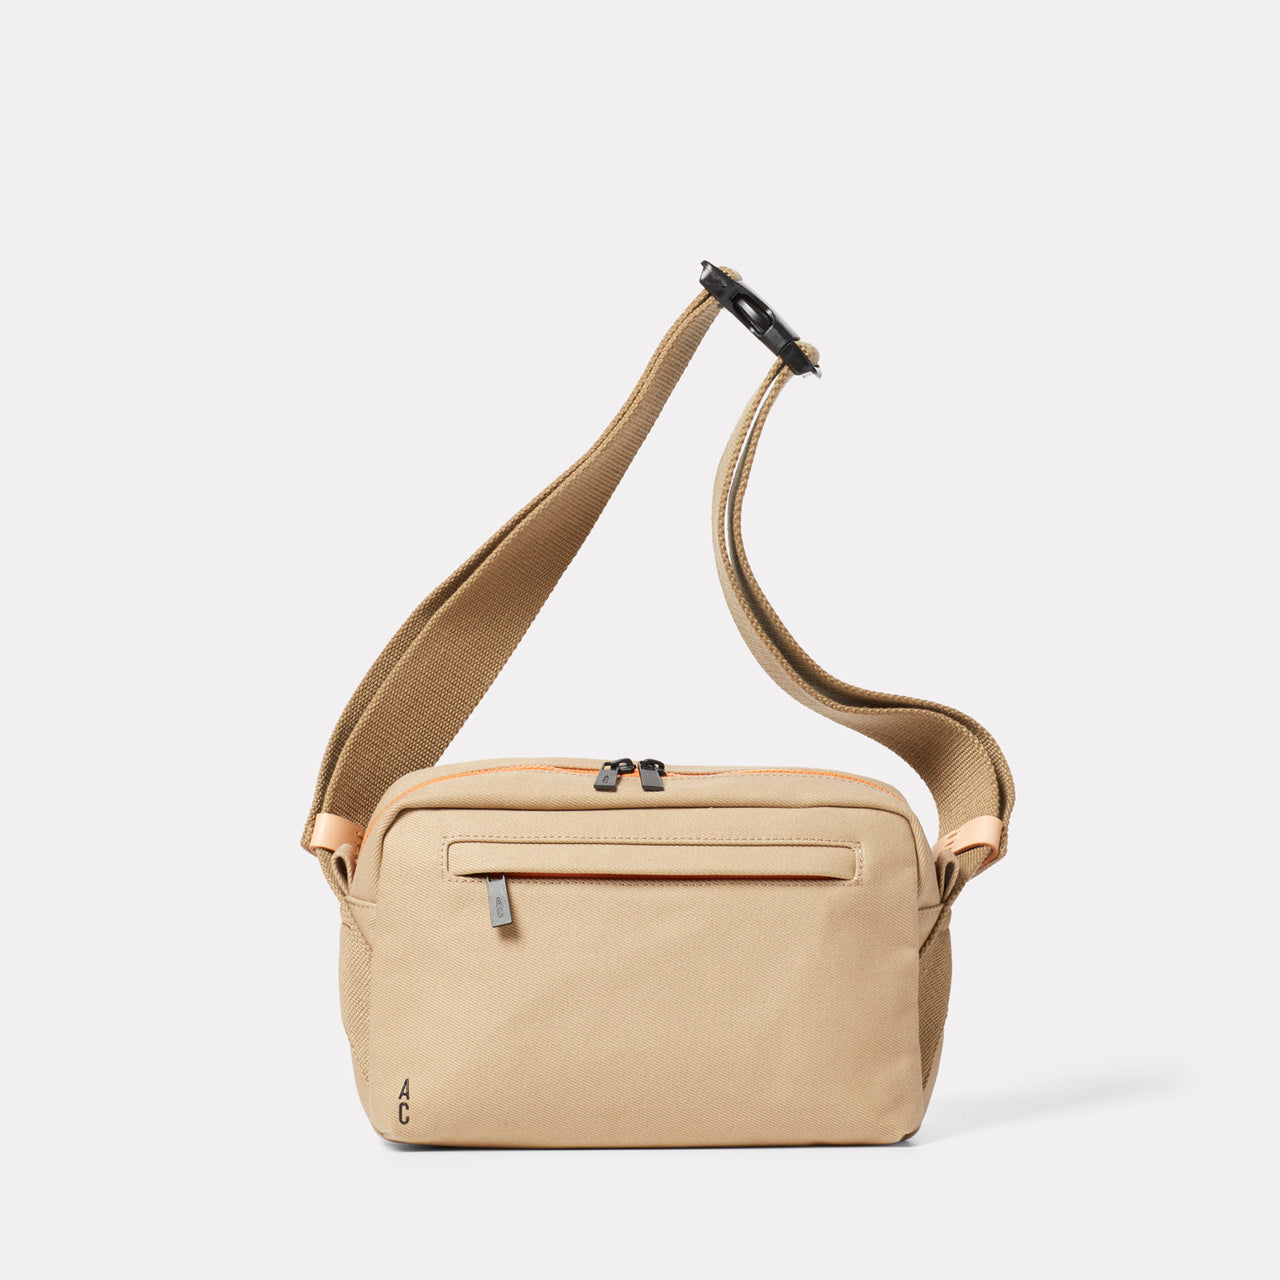 Pendle Travel & Cycle Body Bag in Beige